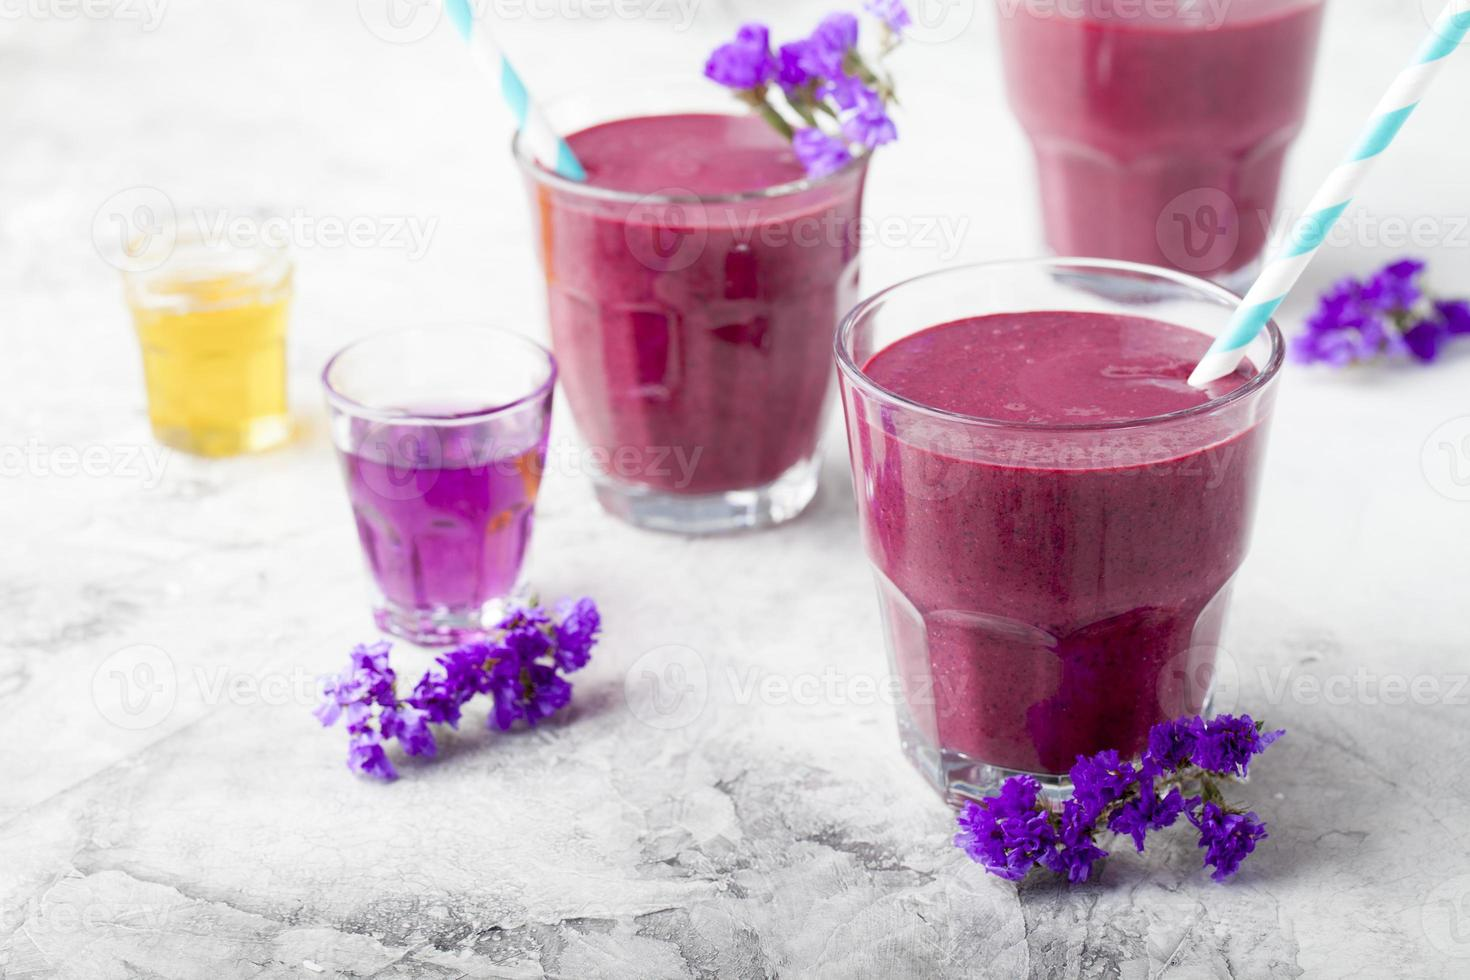 Blueberry, blackberry, honeysuckle, honeyberry smoothie with violet syrup and acai. photo